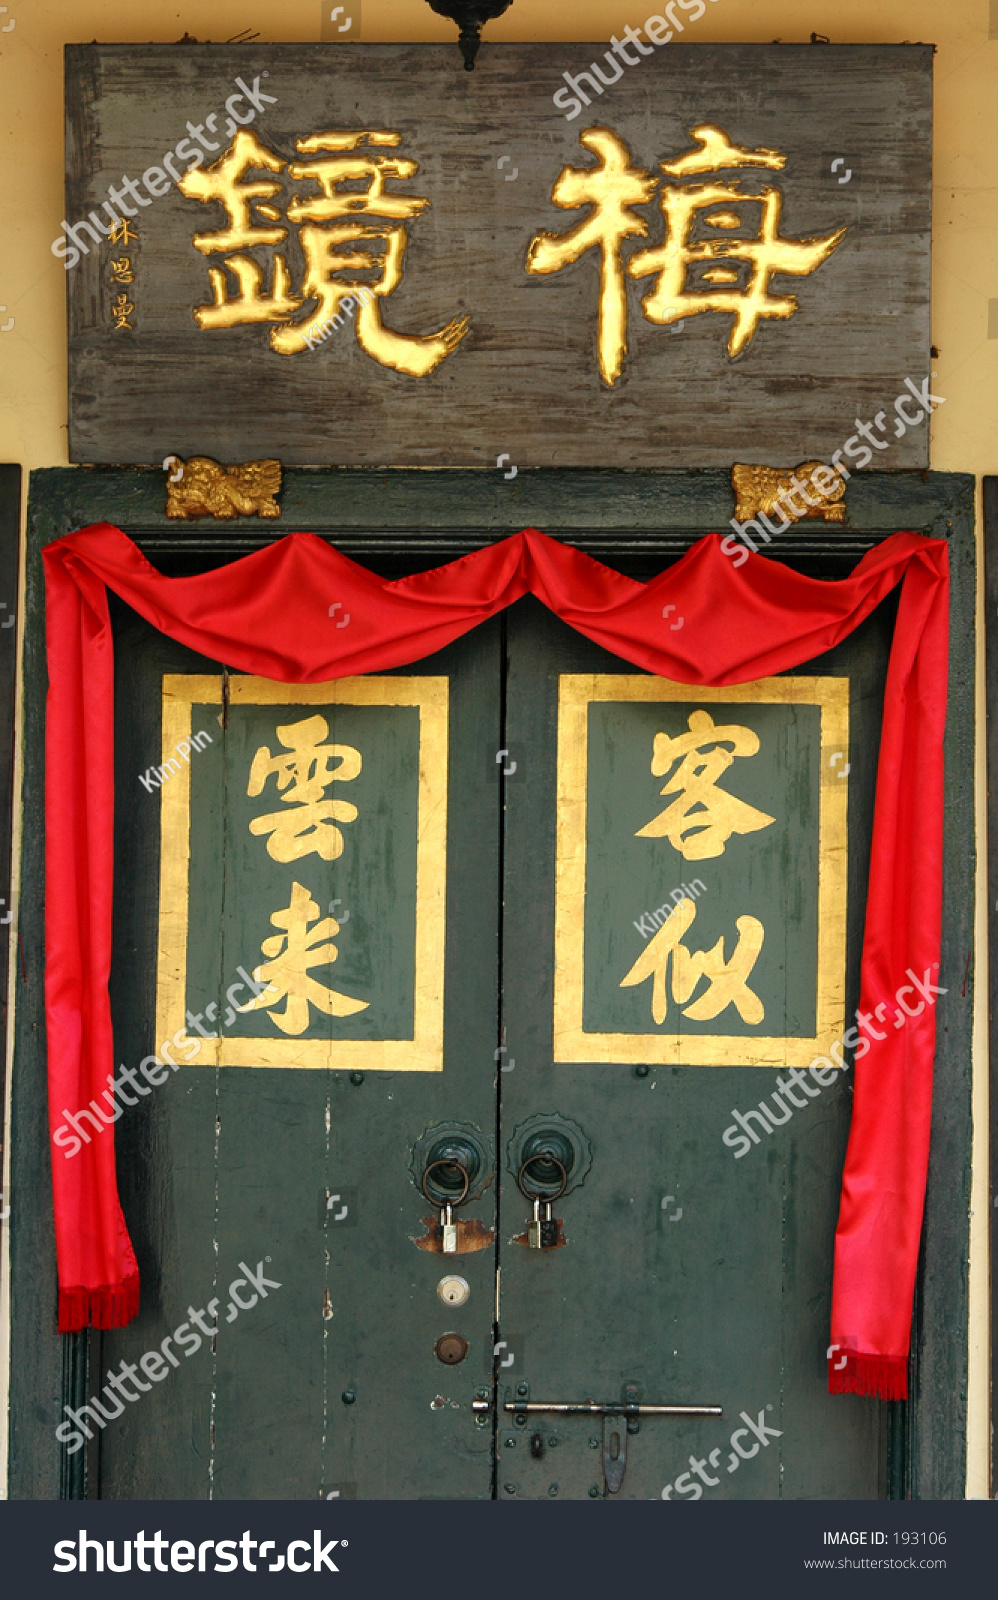 Chinese Characters On Door Old House Stock Photo 193106 - Shutterstock